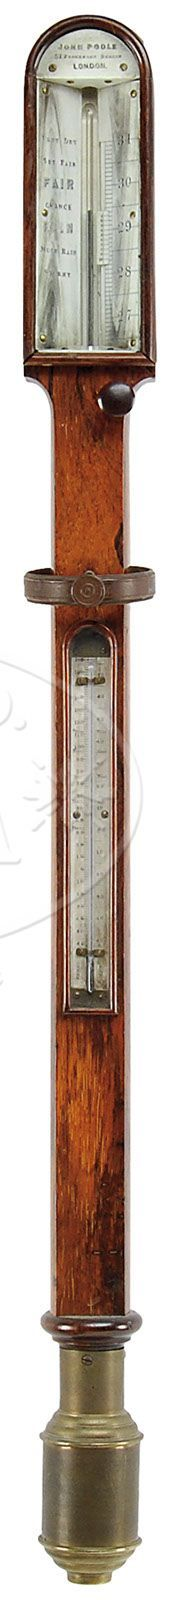 FINE ROSEWOOD STICK BAROMETER ON GIMBAL.